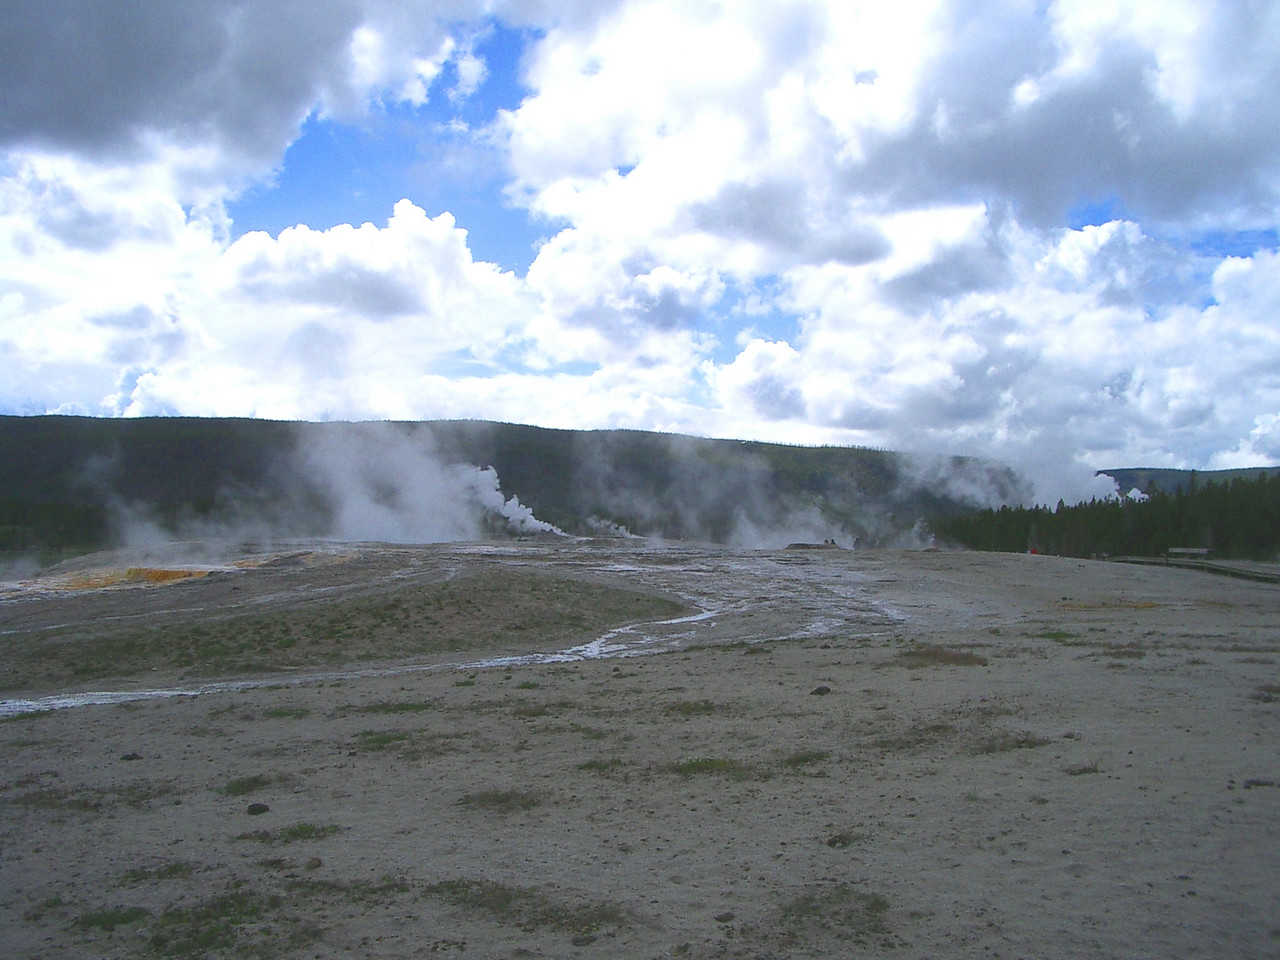 There were maybe 100 geysers and hot springs in the area.